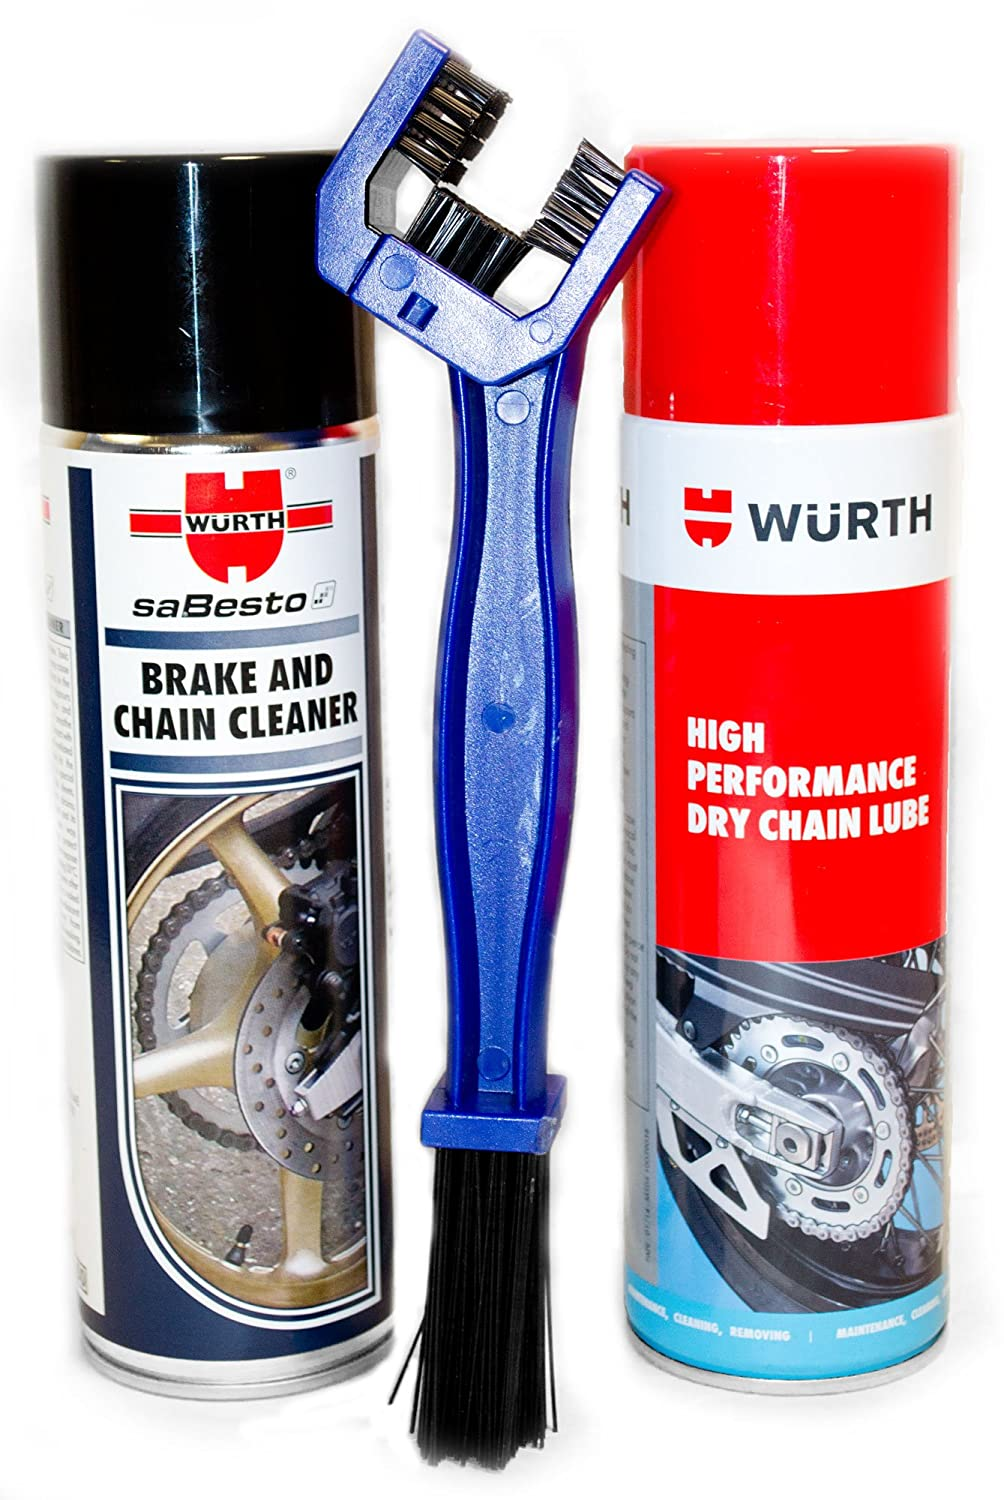 Wurth Brake and Chain Cleaner & Dry Chain Lube with Chain Brush - Combo Pack